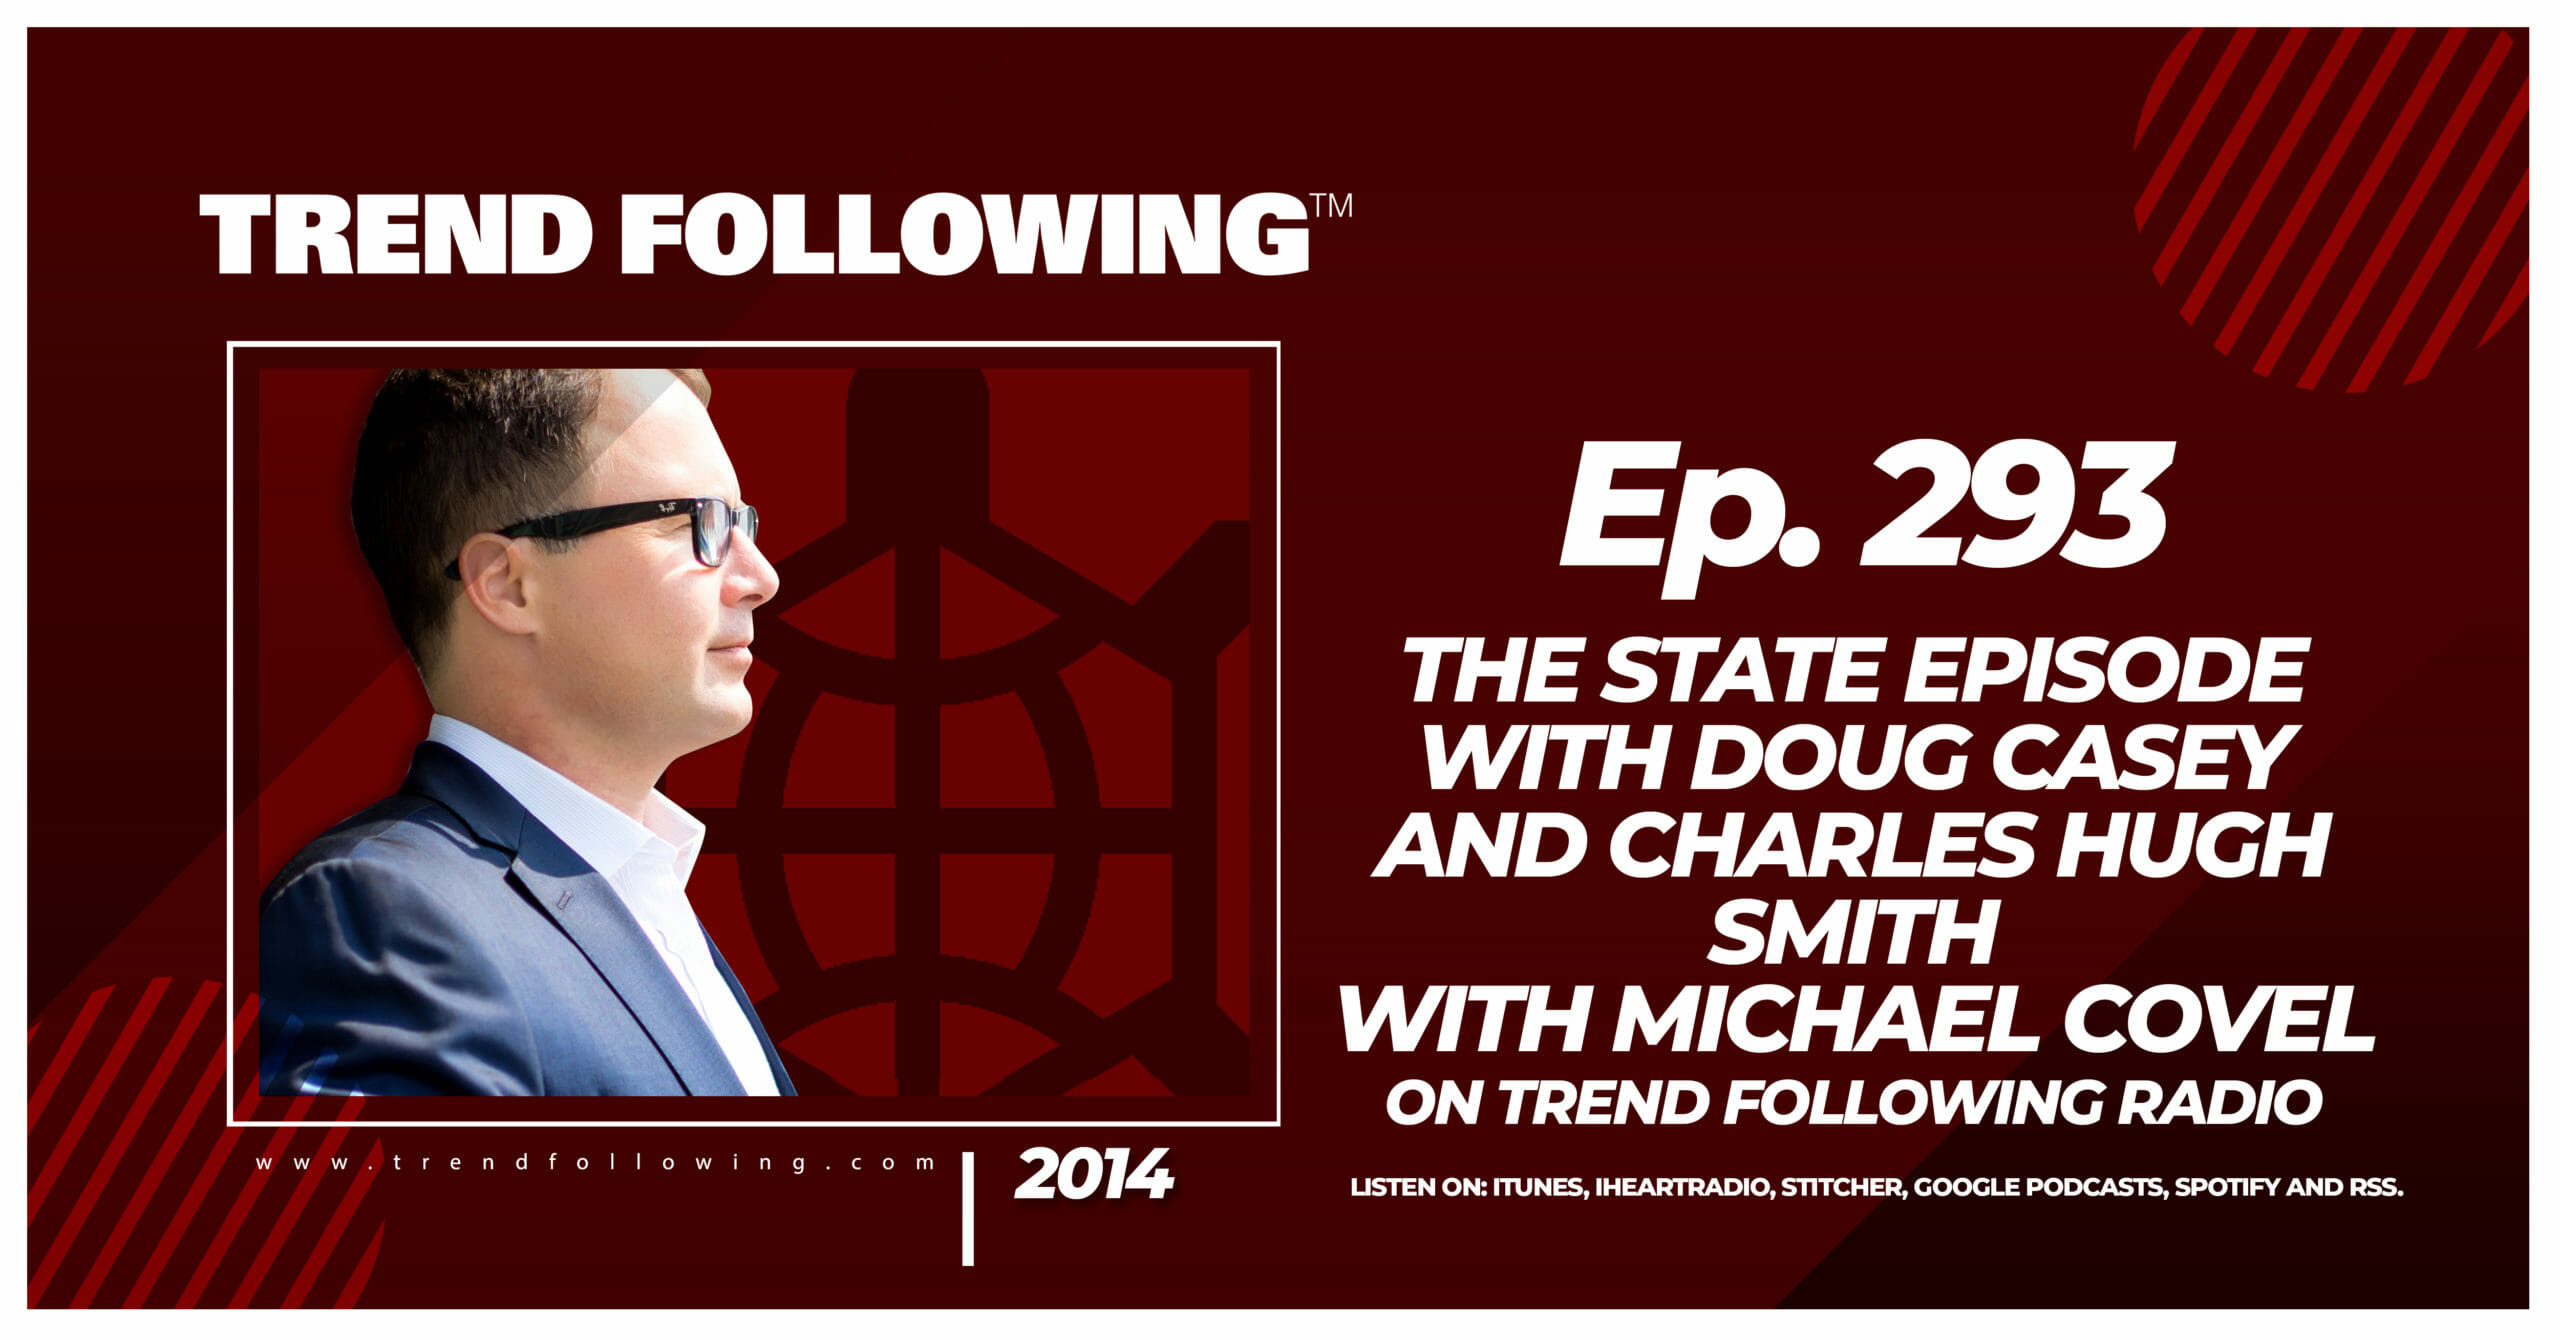 The State Episode with Doug Casey and Charles Hugh Smith with Michael Covel on Trend Following Radio